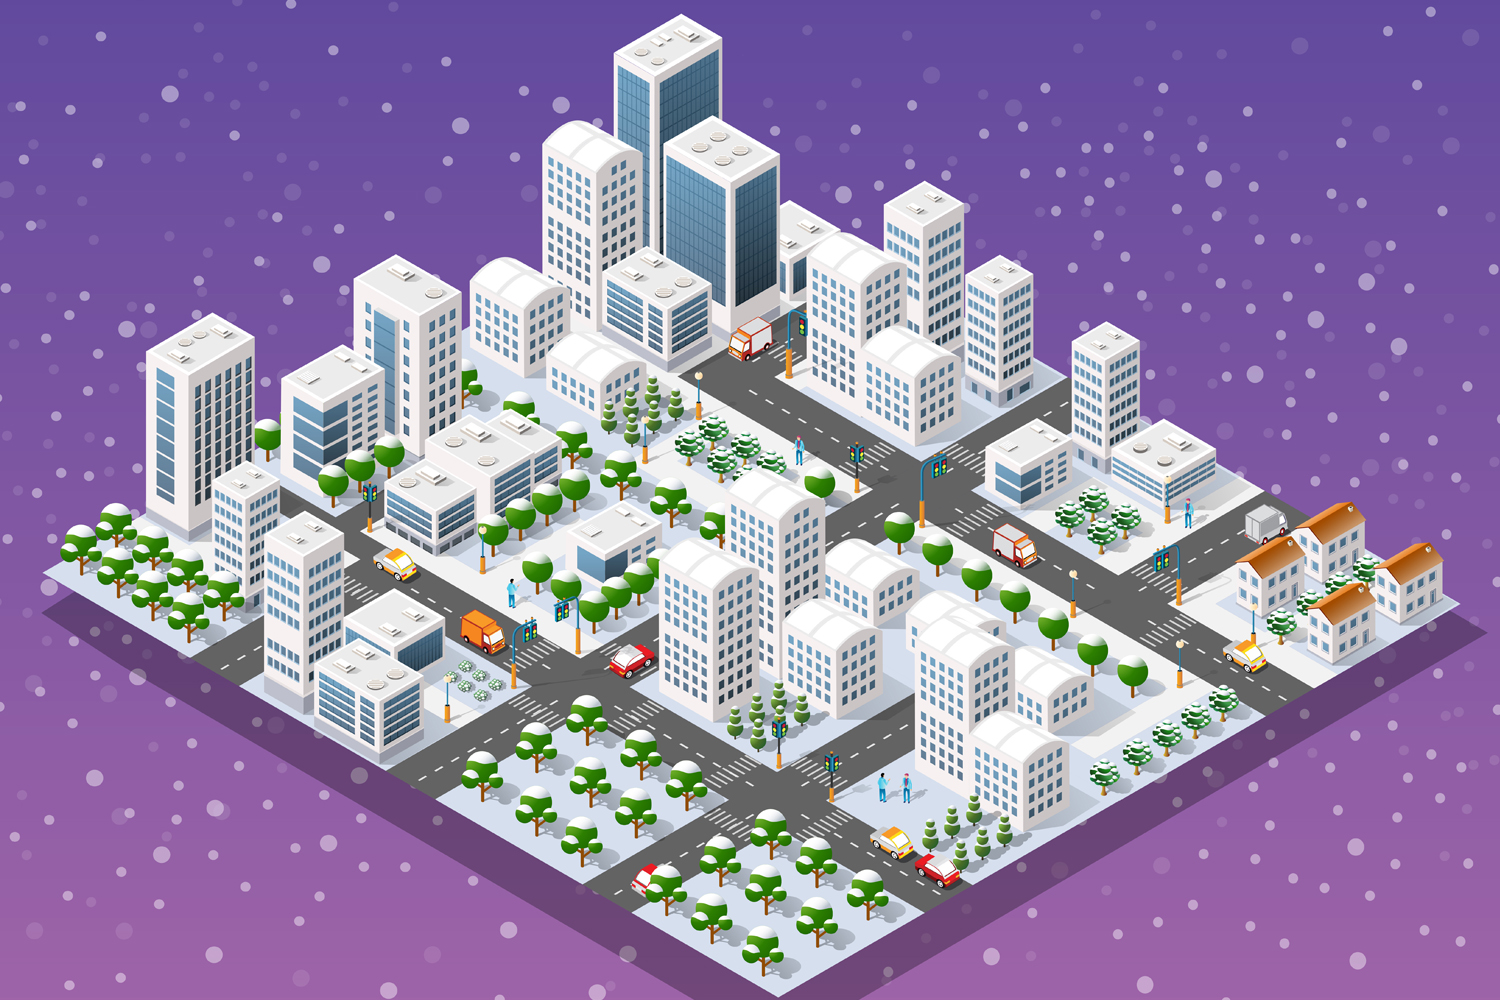 New Year is an isometric city example image 1